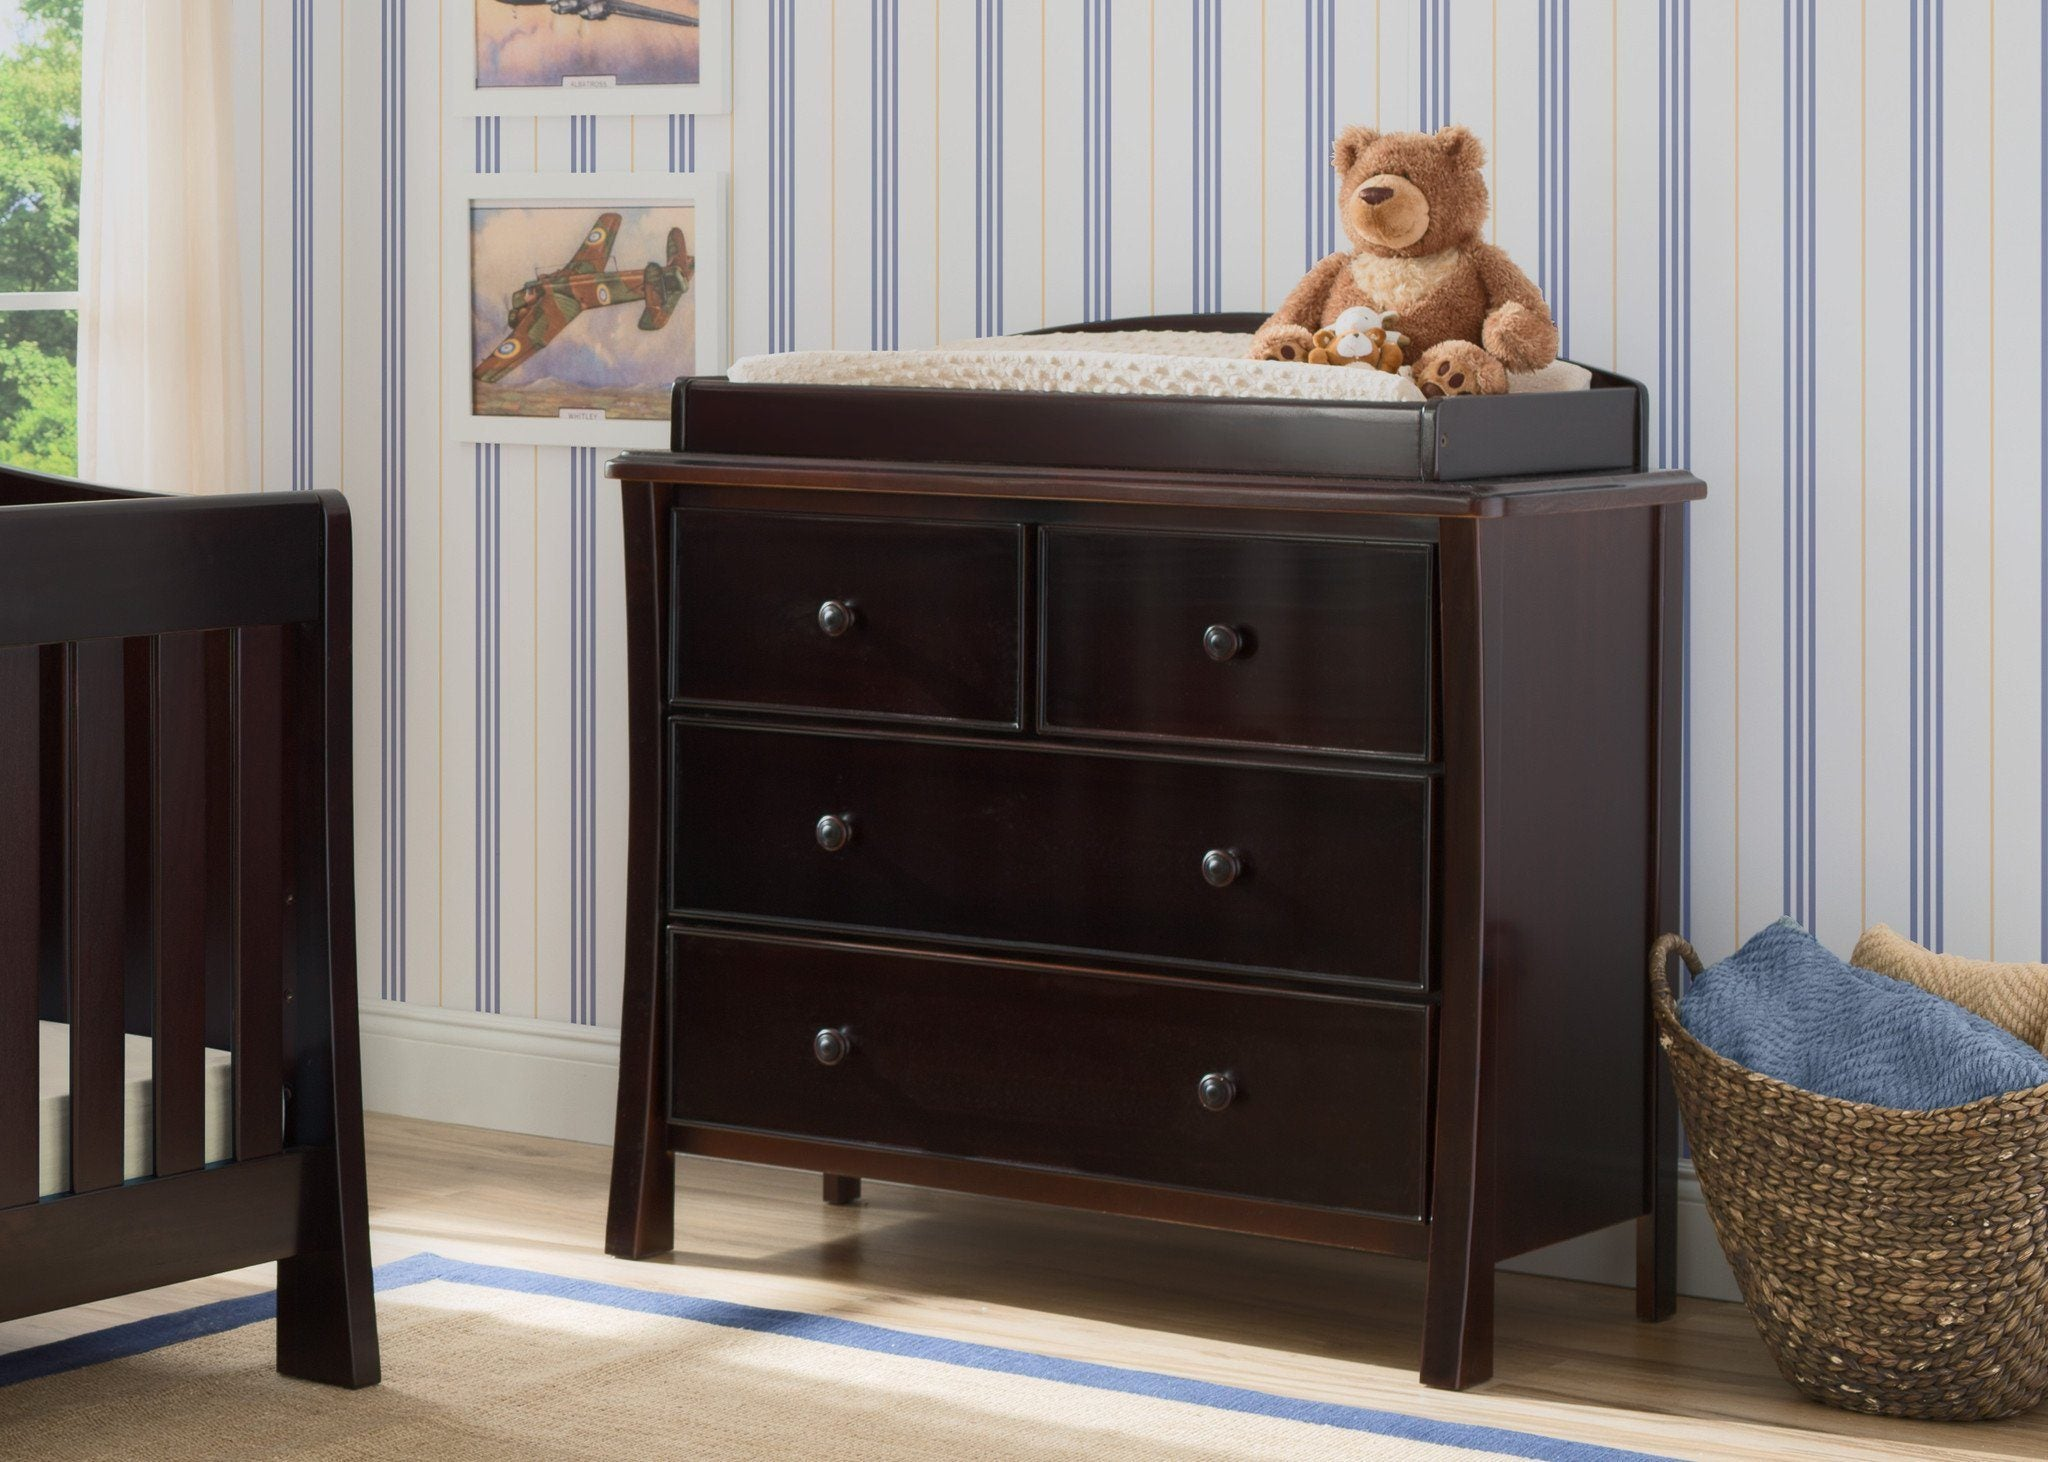 Simmons Kids Black Espresso (907) Madisson 4 Drawer Dresser with Changing Top, Room View, b1b